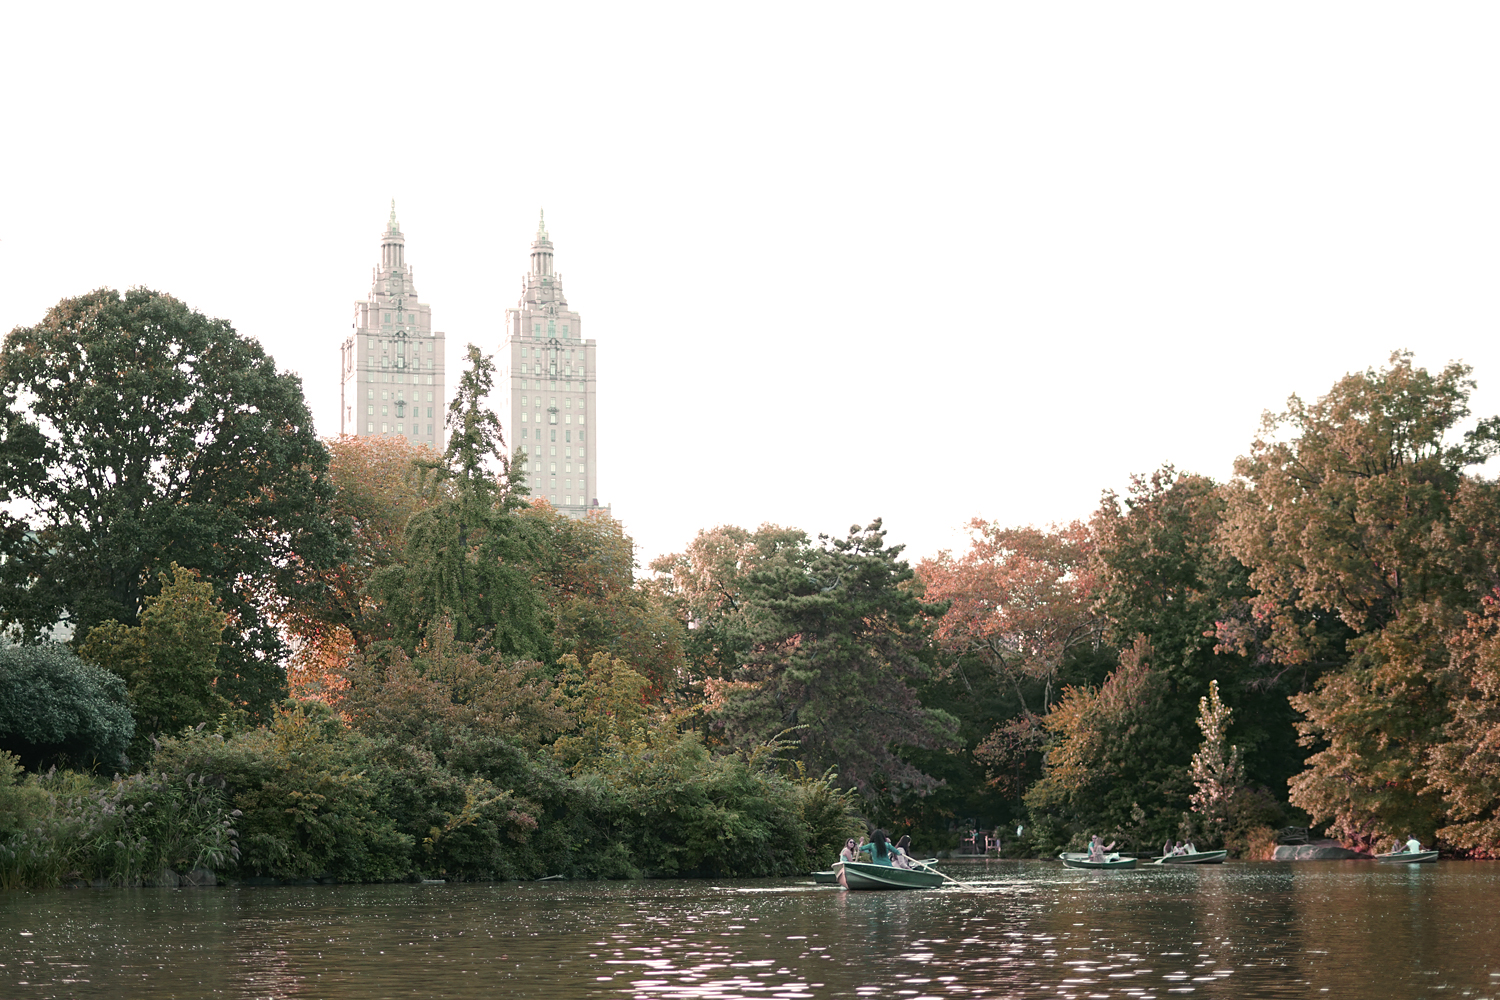 01centralpark-lake-boat-nyc-landscape-travel